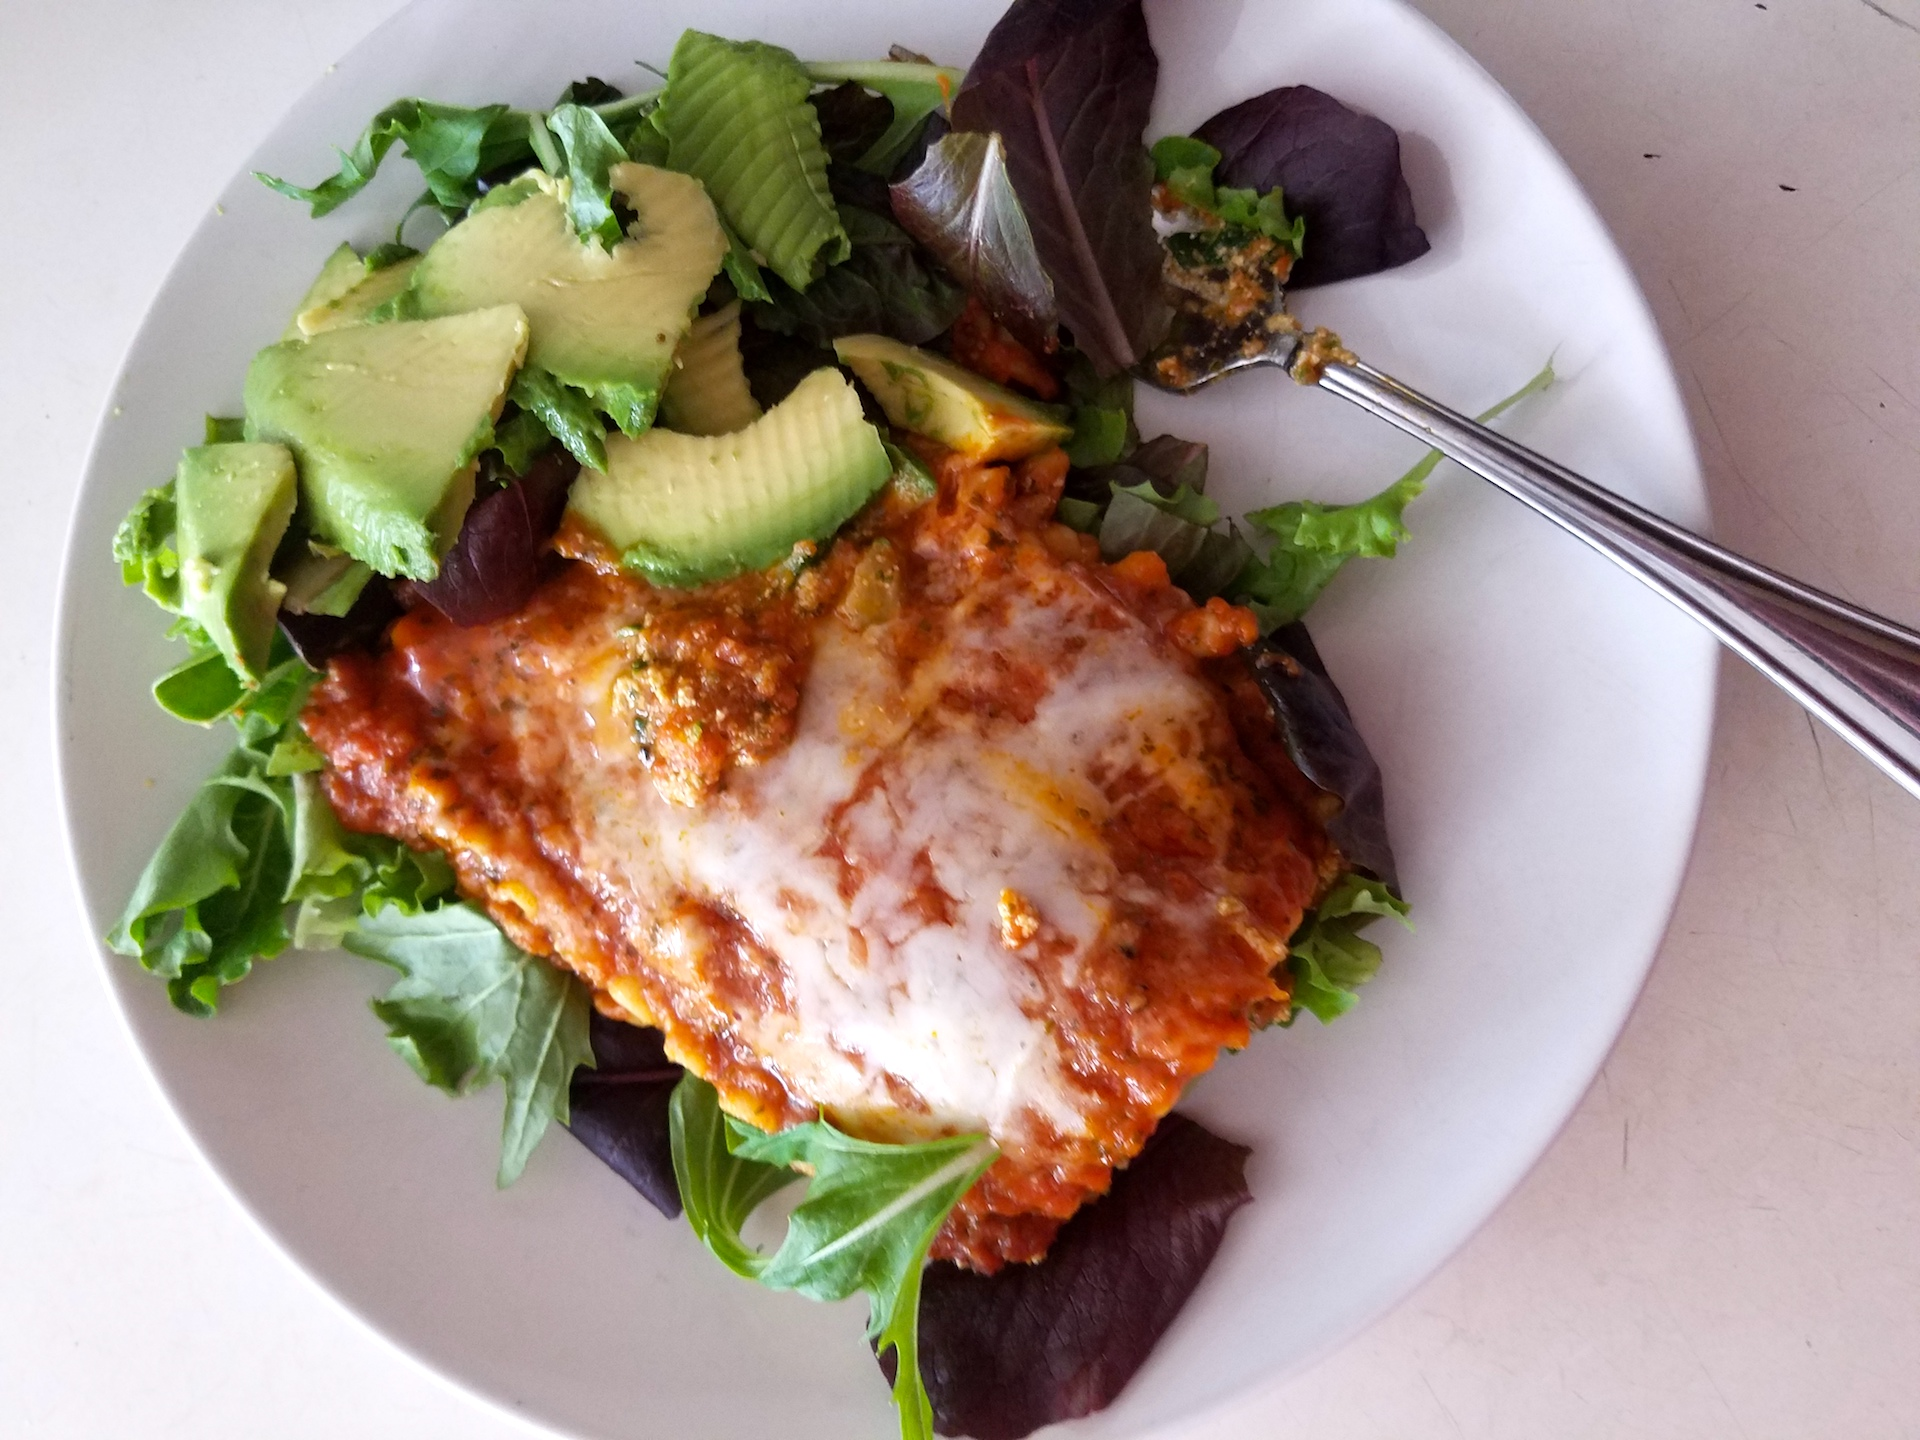 Amy's veggie lasagna on a bed of lettuce with avocado.